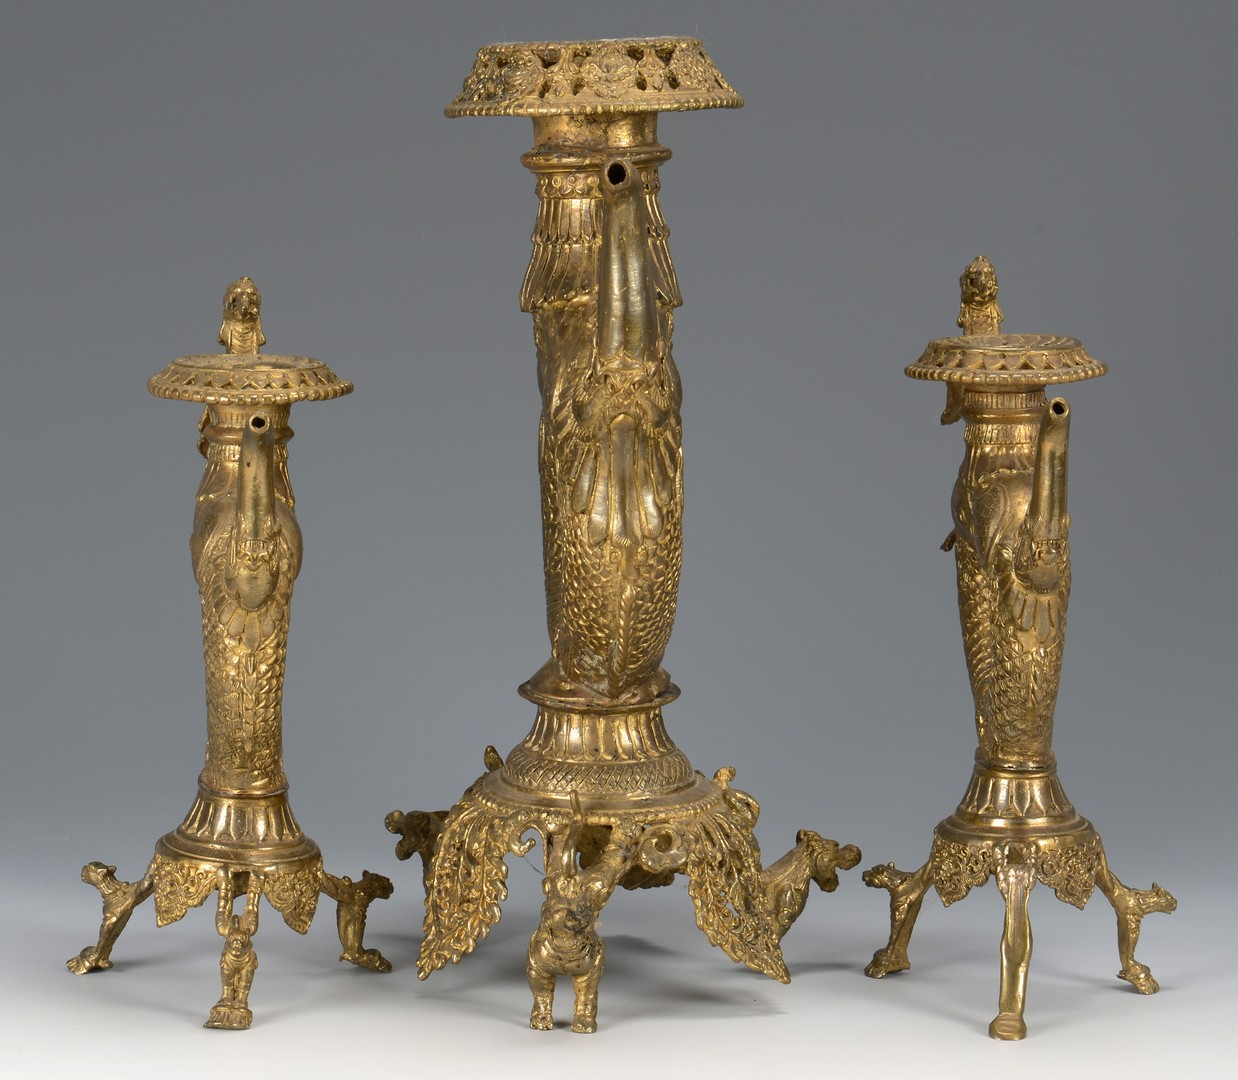 Lot 3594194: Chinese Gilt Altar Candelabra Set